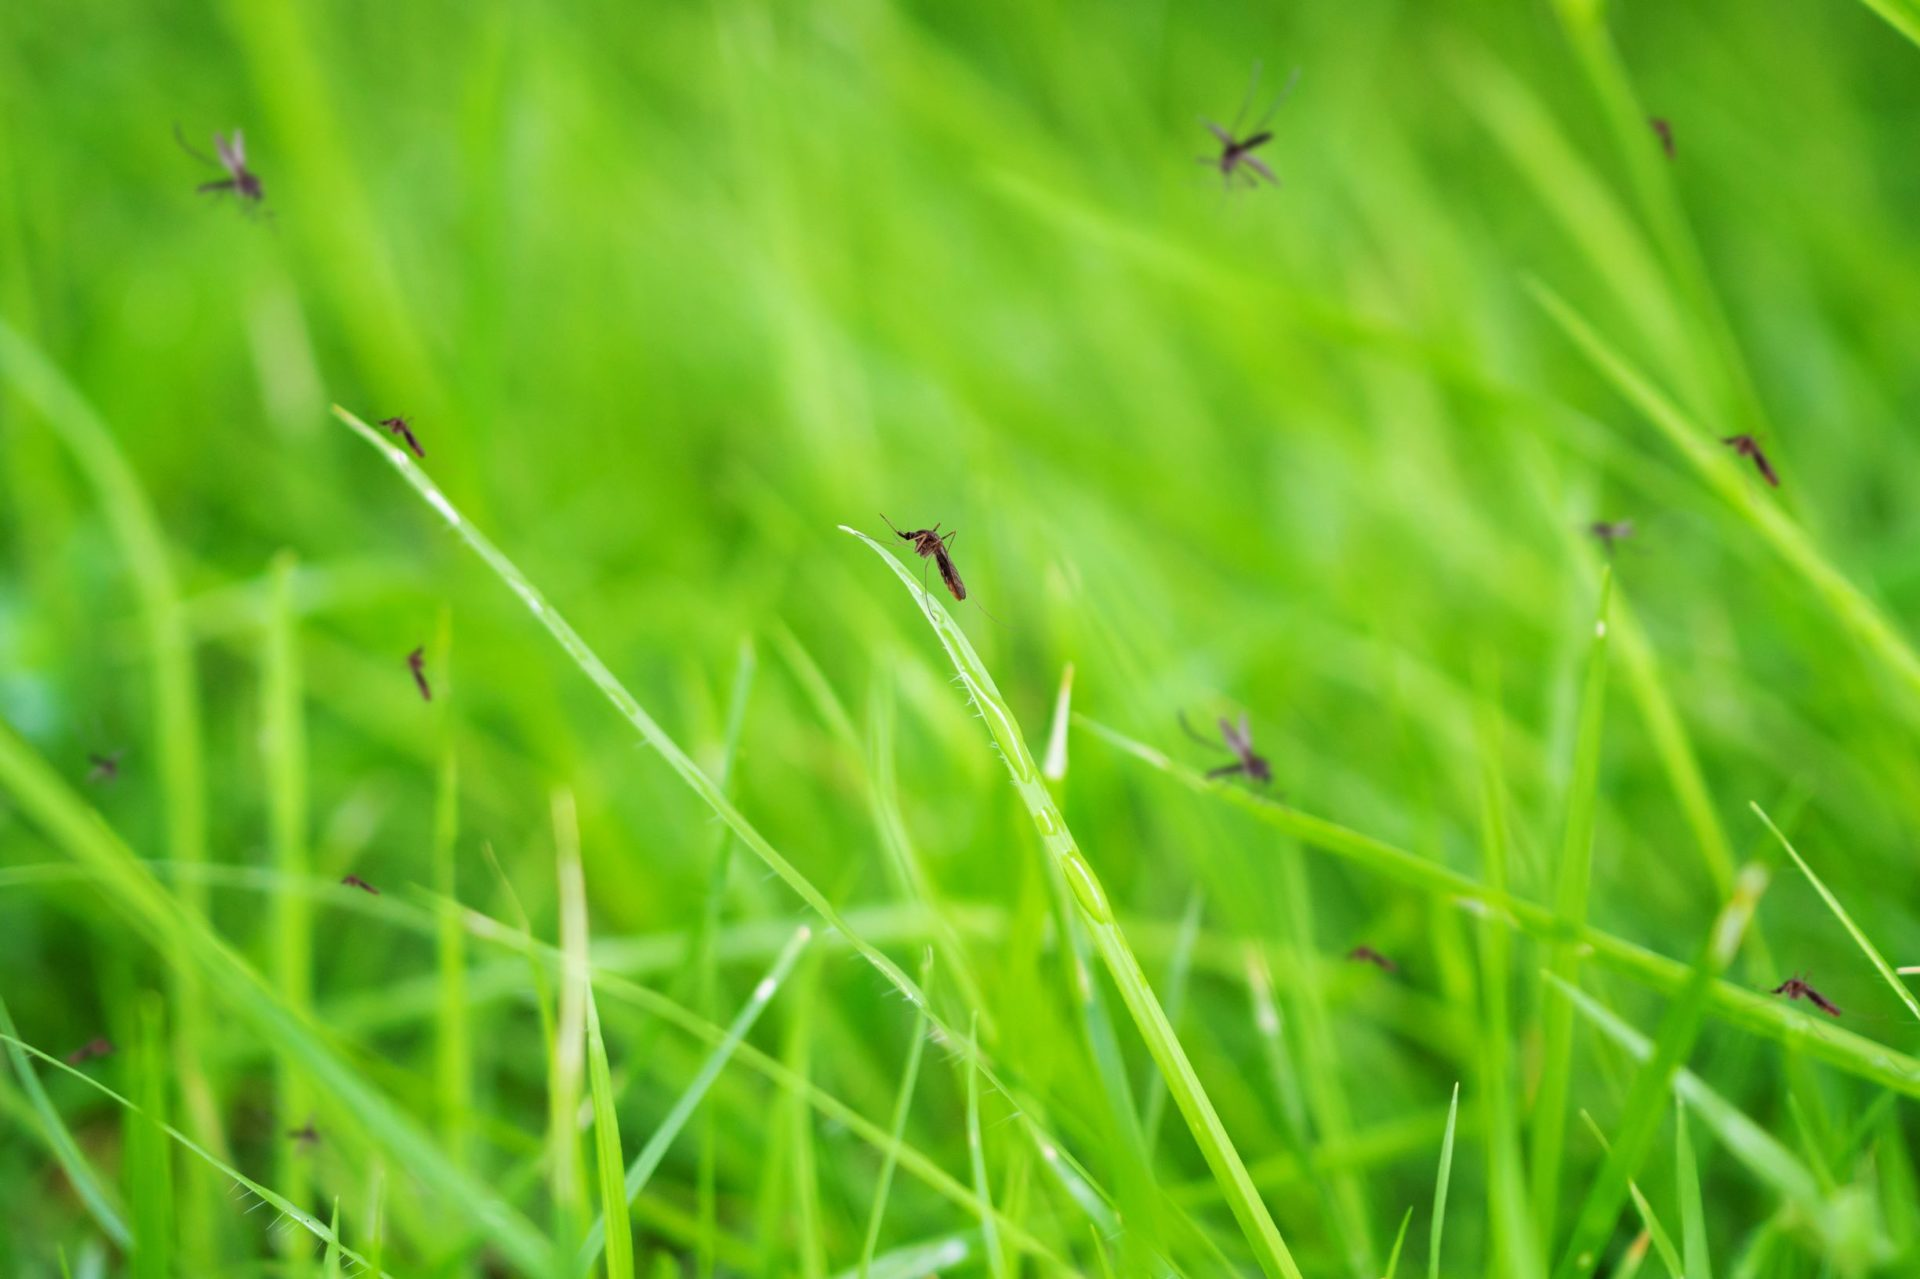 Mosquitoes in grass